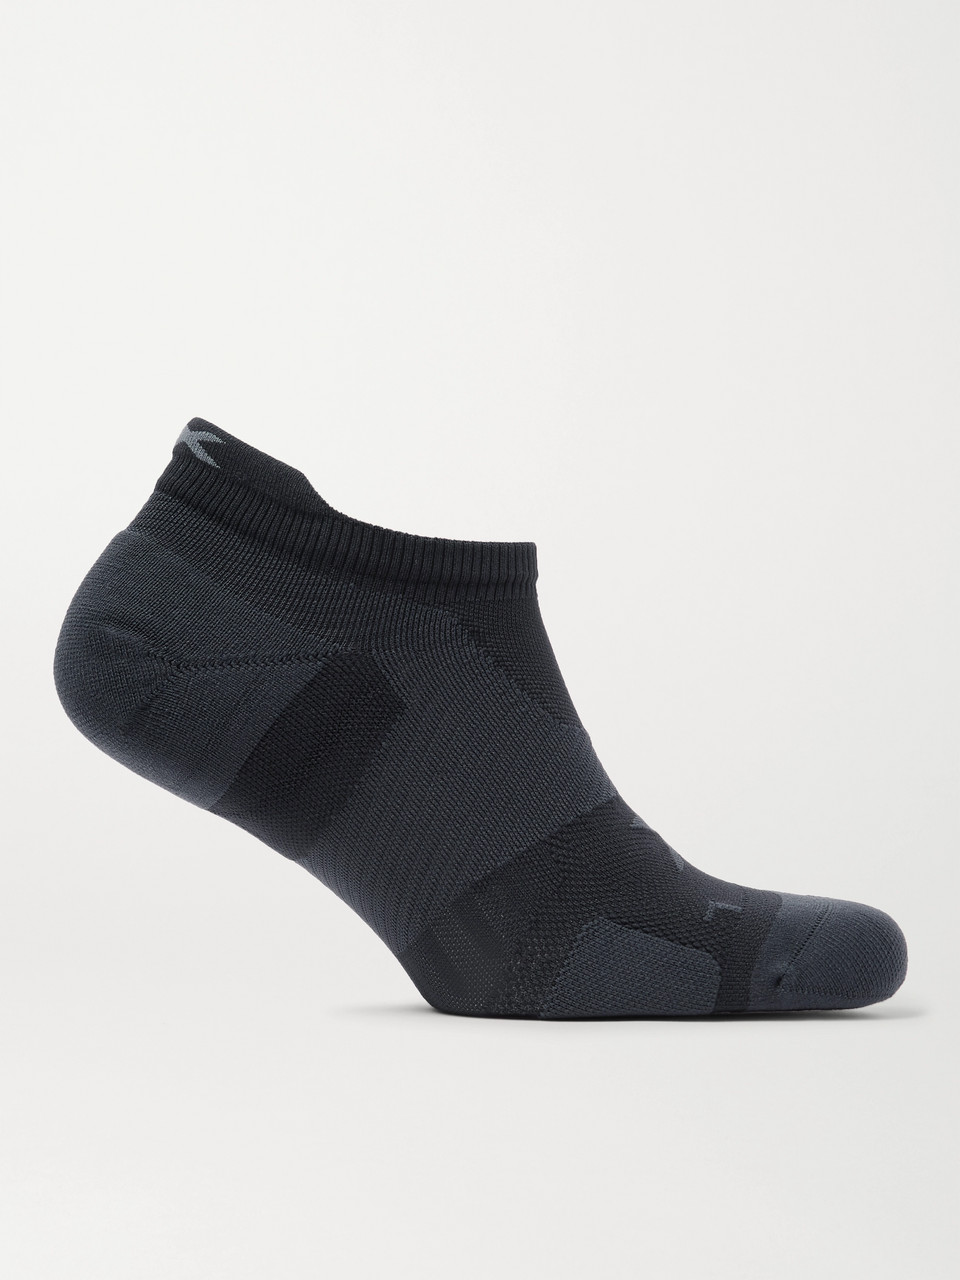 2XU Vectr Cushioned No-Show Socks